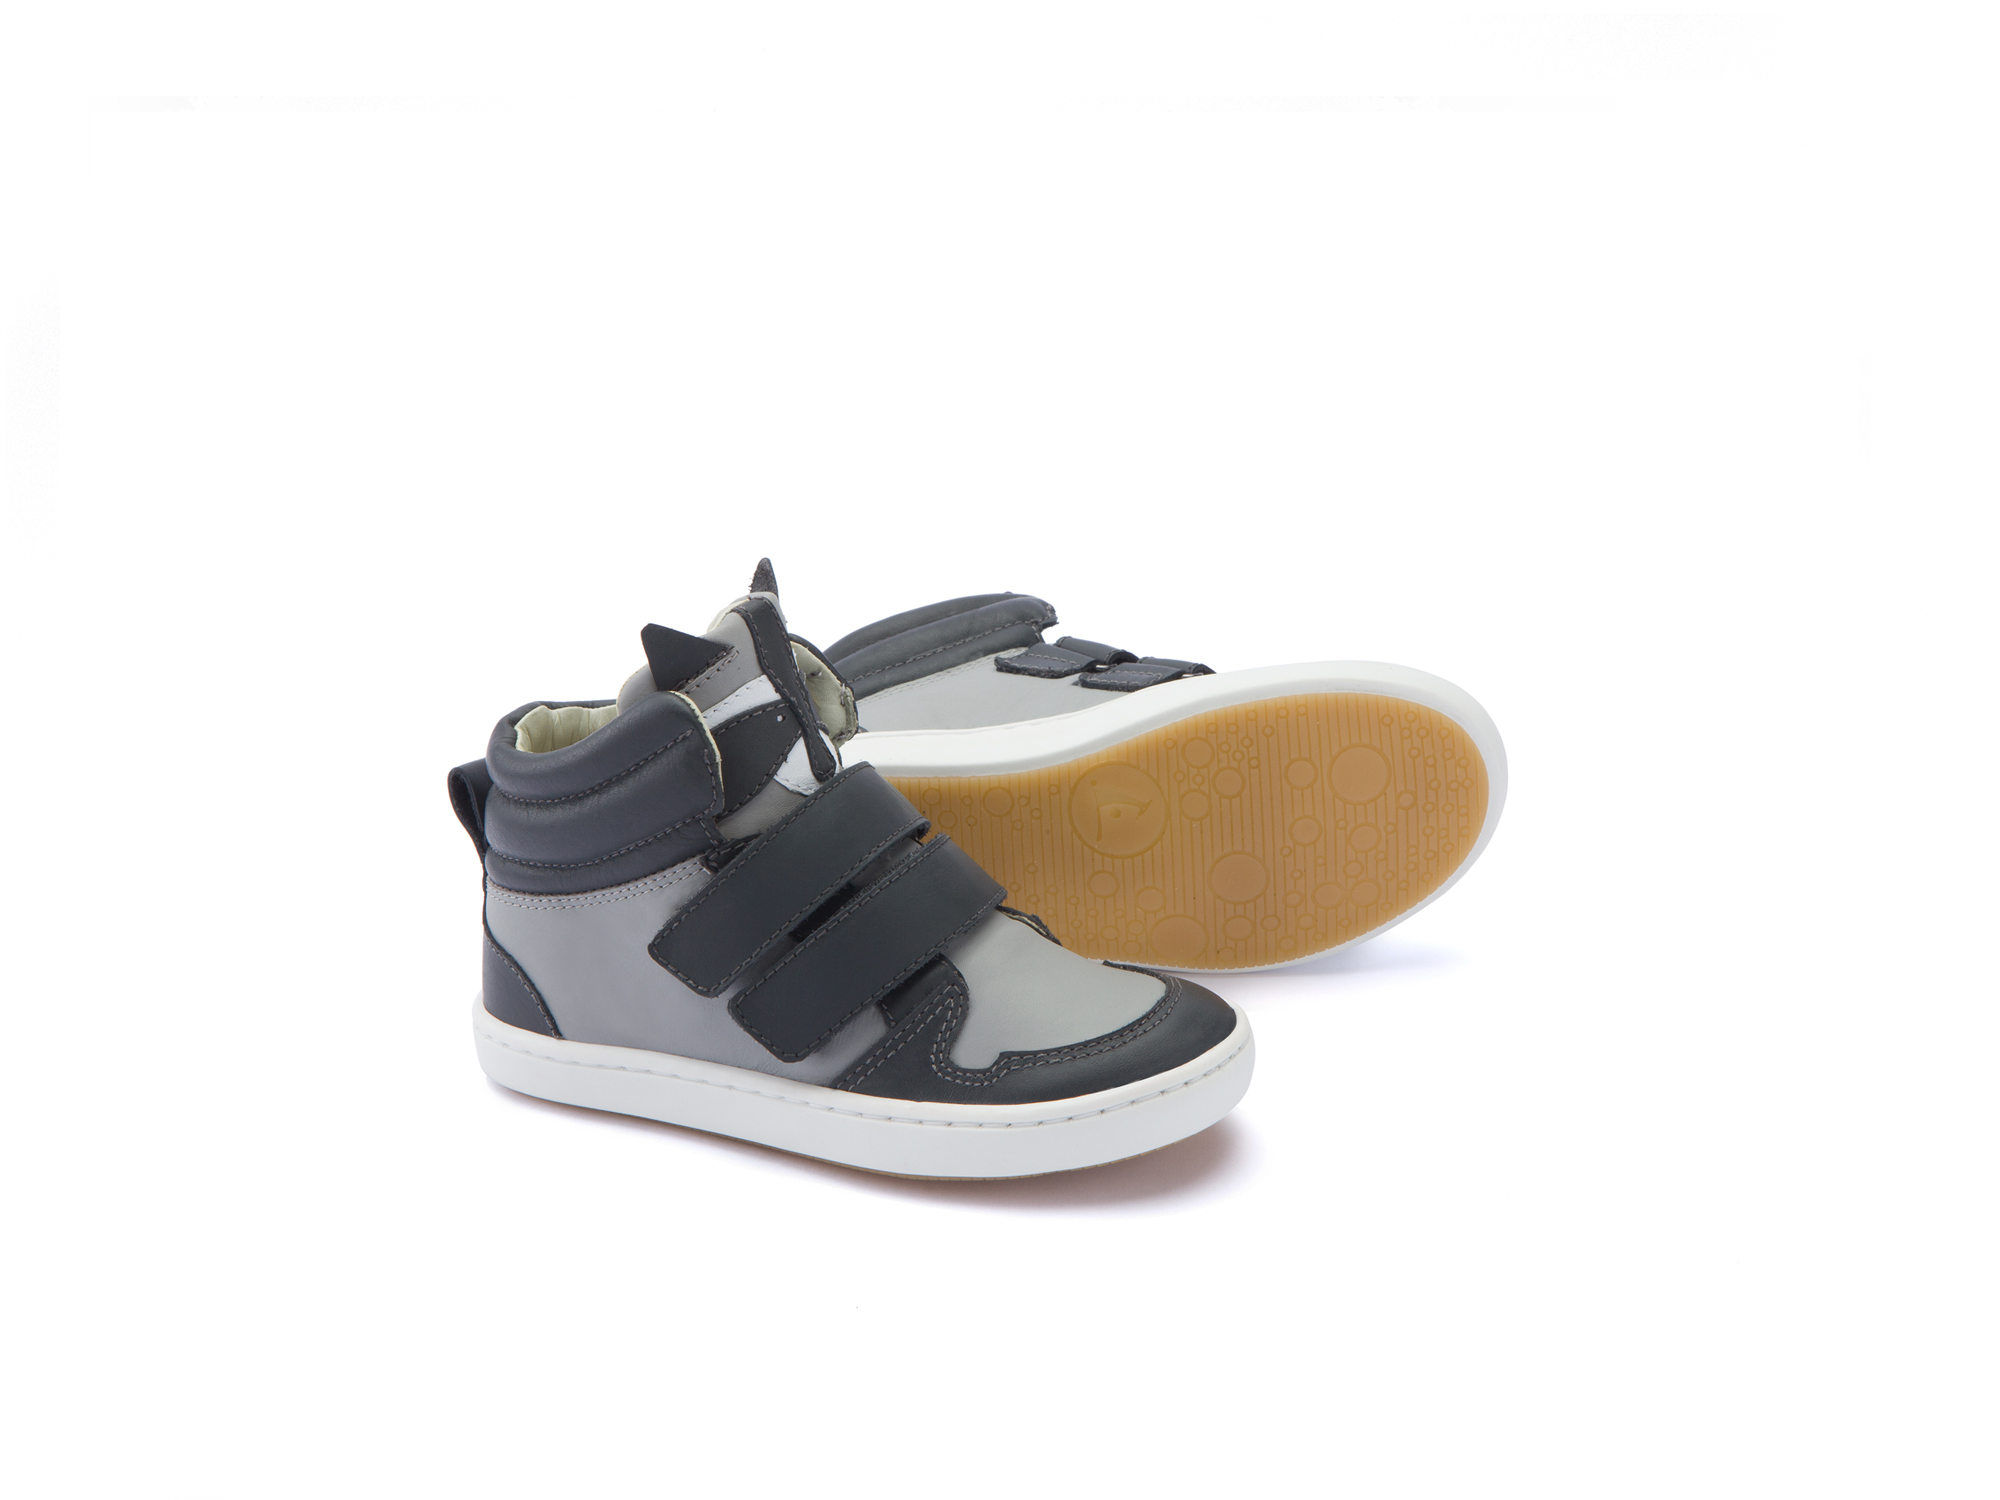 Bota Little Raccoon Ash/ Grey Clay Toddler 2 à 4 anos - 2